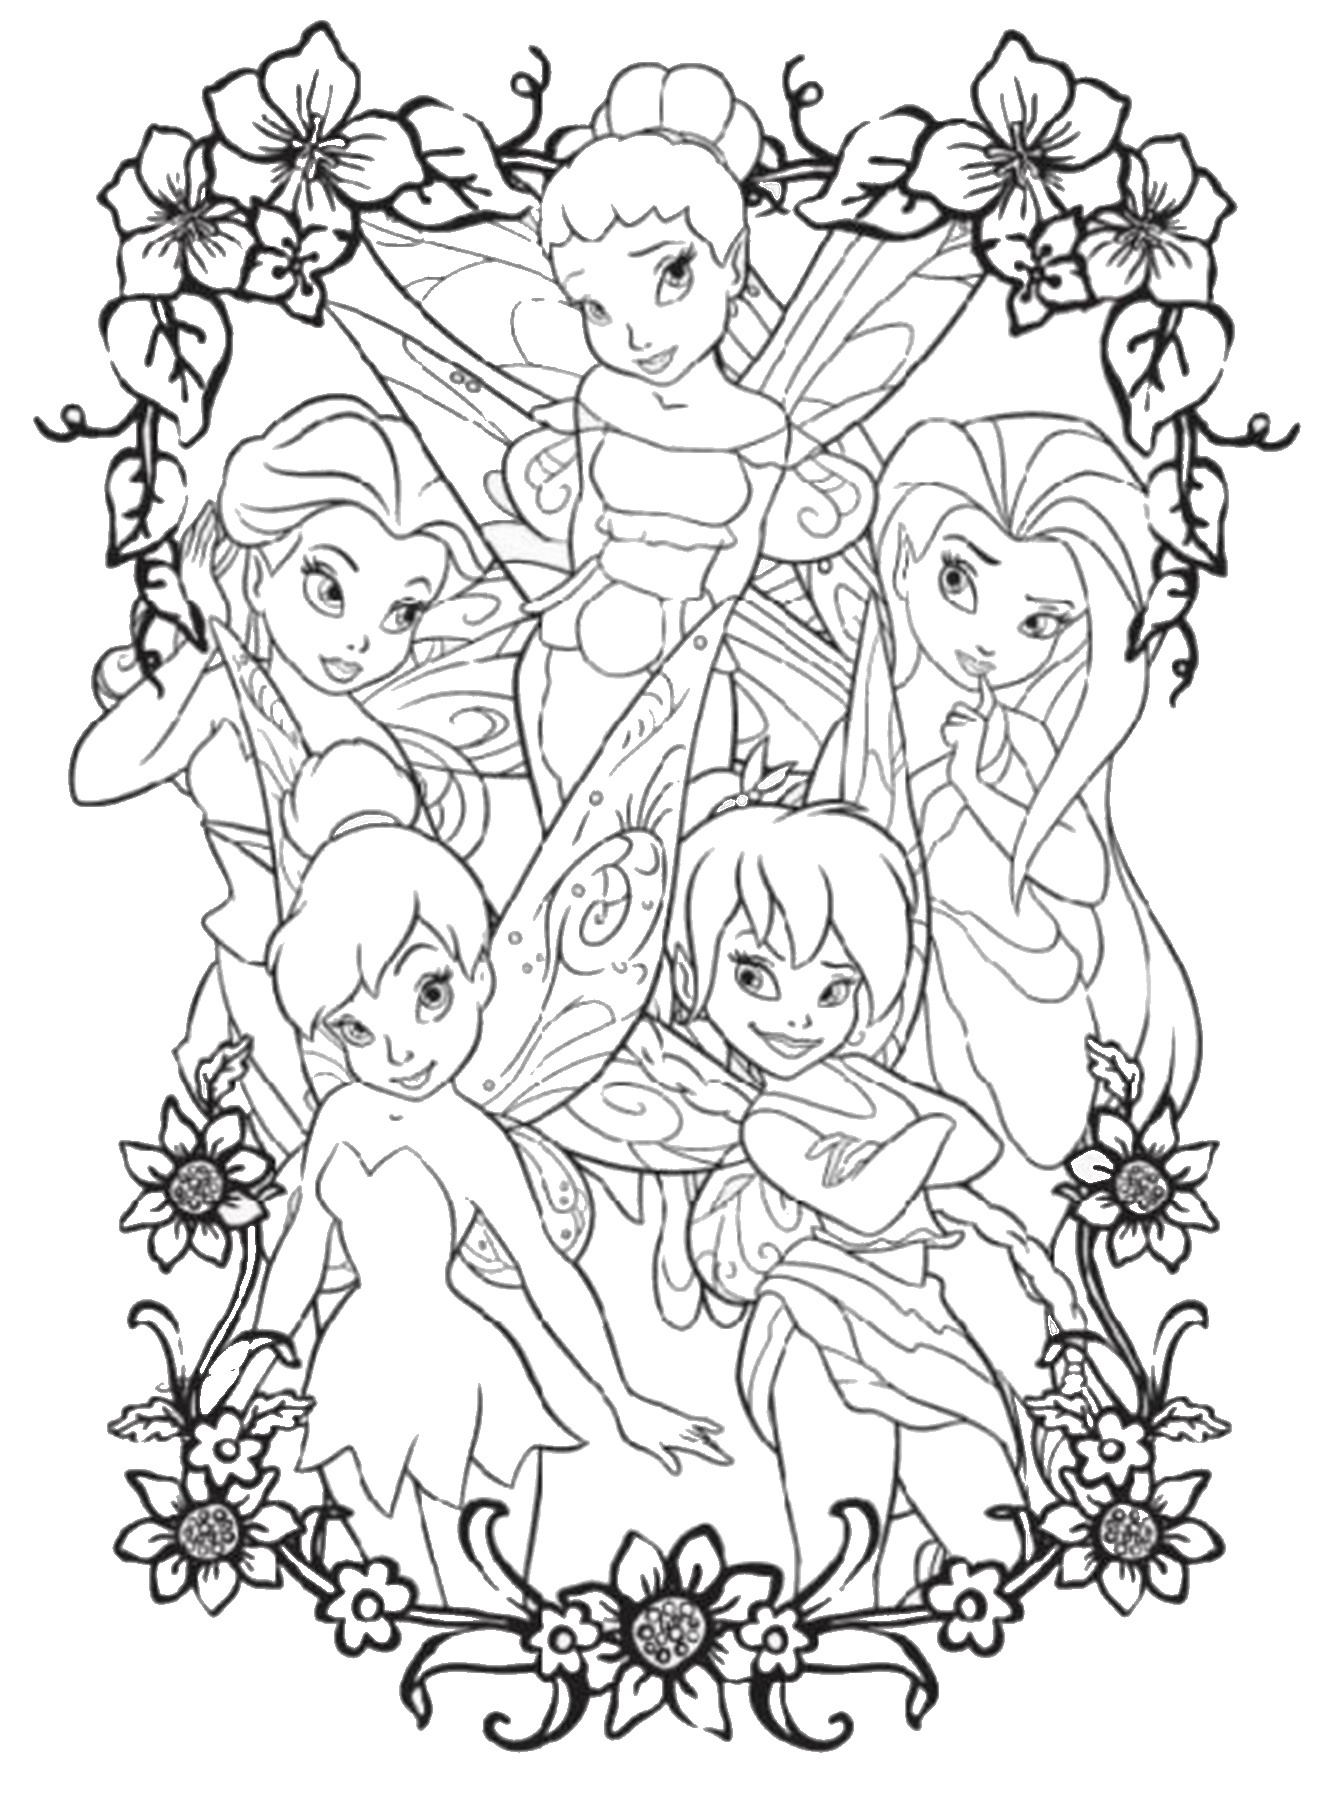 tinkerbell pictures to color 30 tinkerbell coloring pages free coloring pages free to pictures color tinkerbell